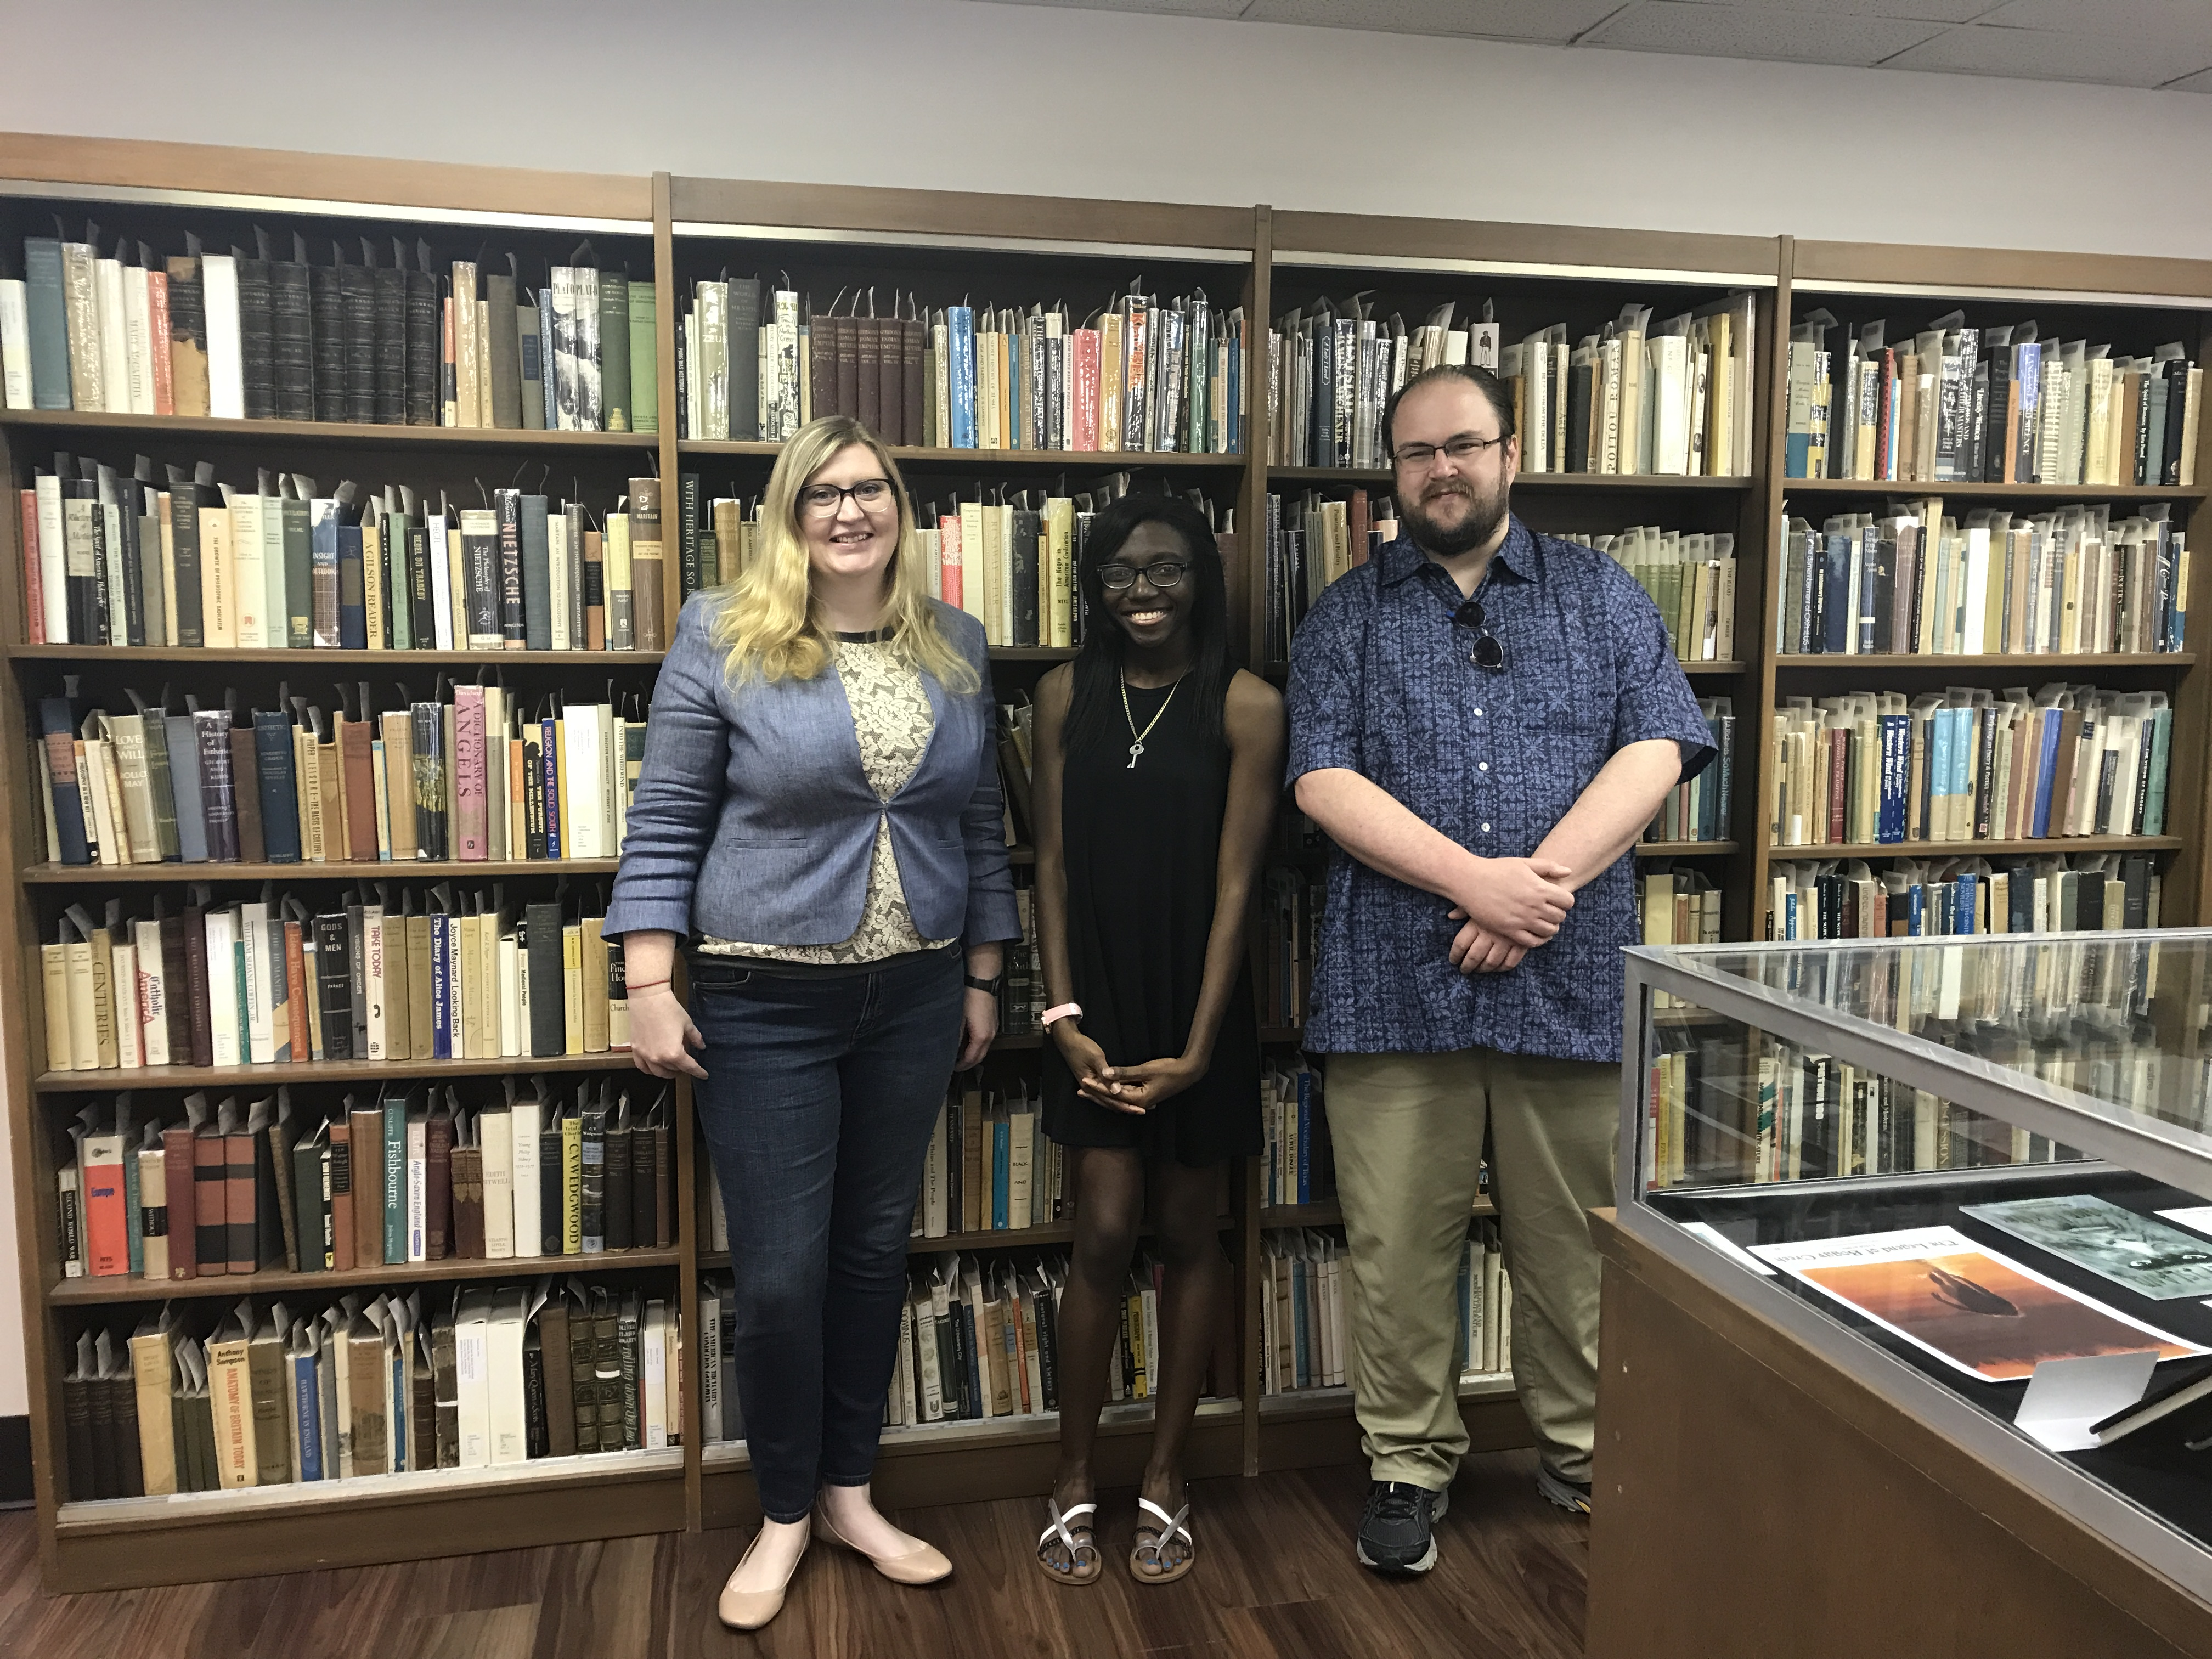 News | The society of mississippi archivists